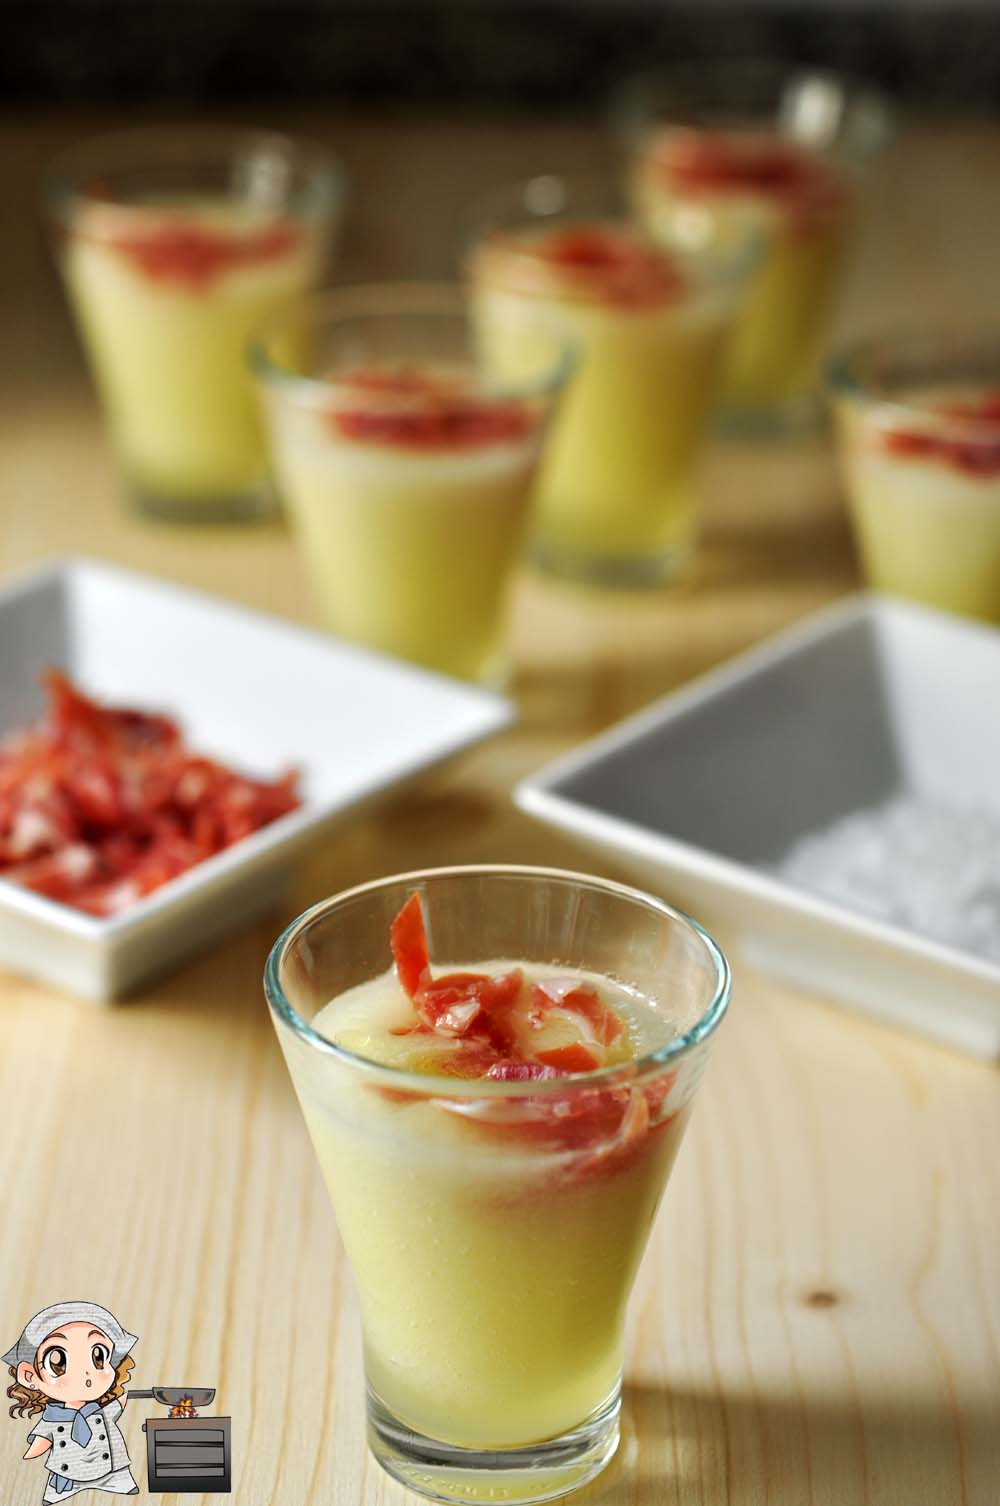 chupitos_melon_jamon_1